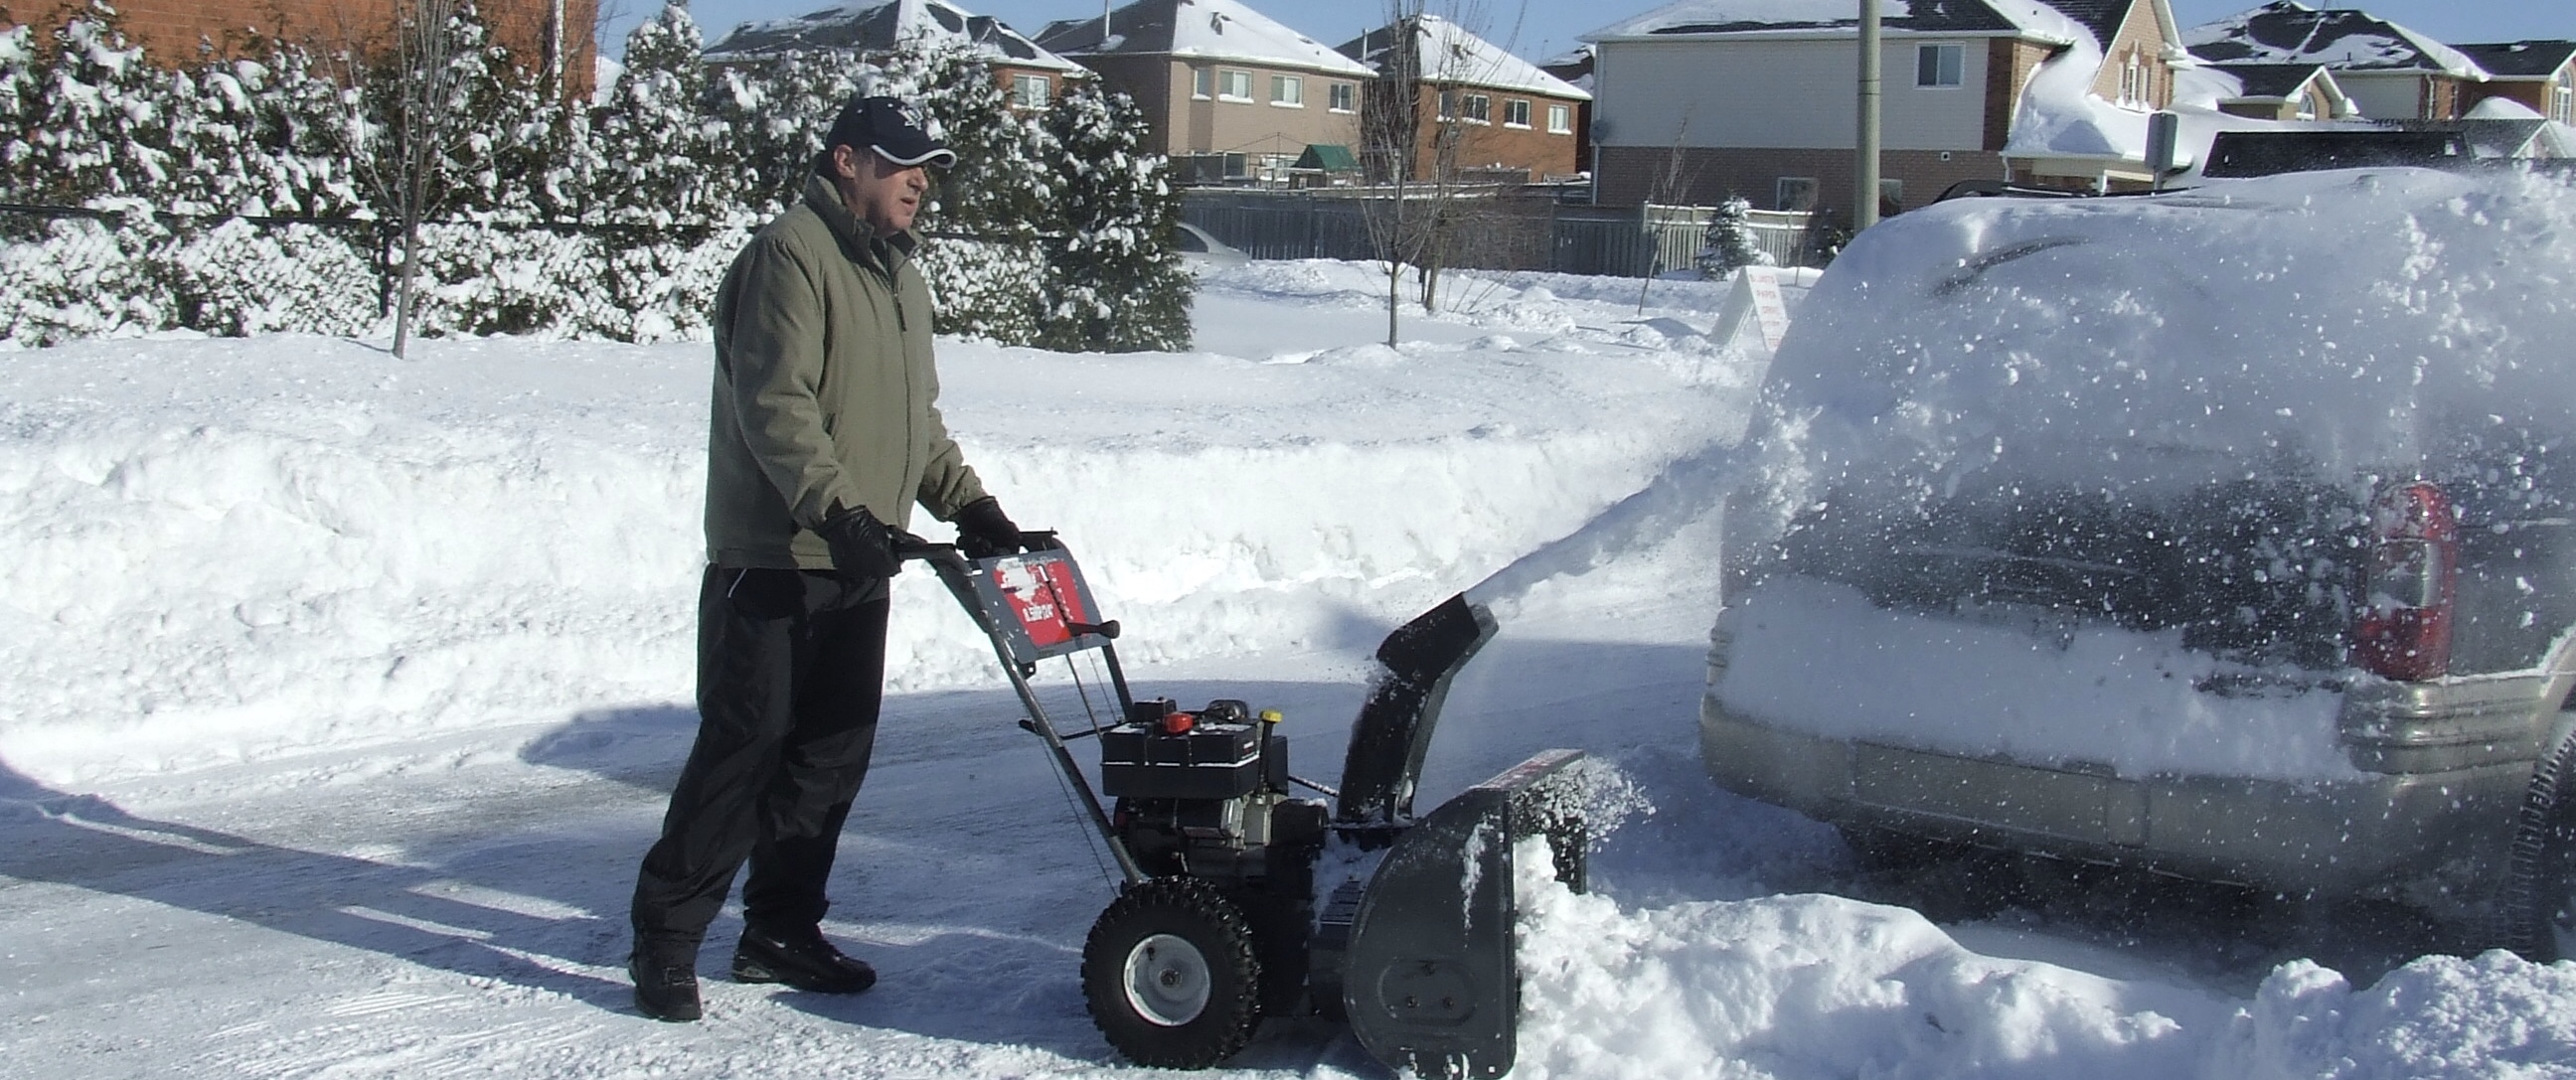 Over 15,000 snow blowers recalled in Canada after nearly 40 injuries reported